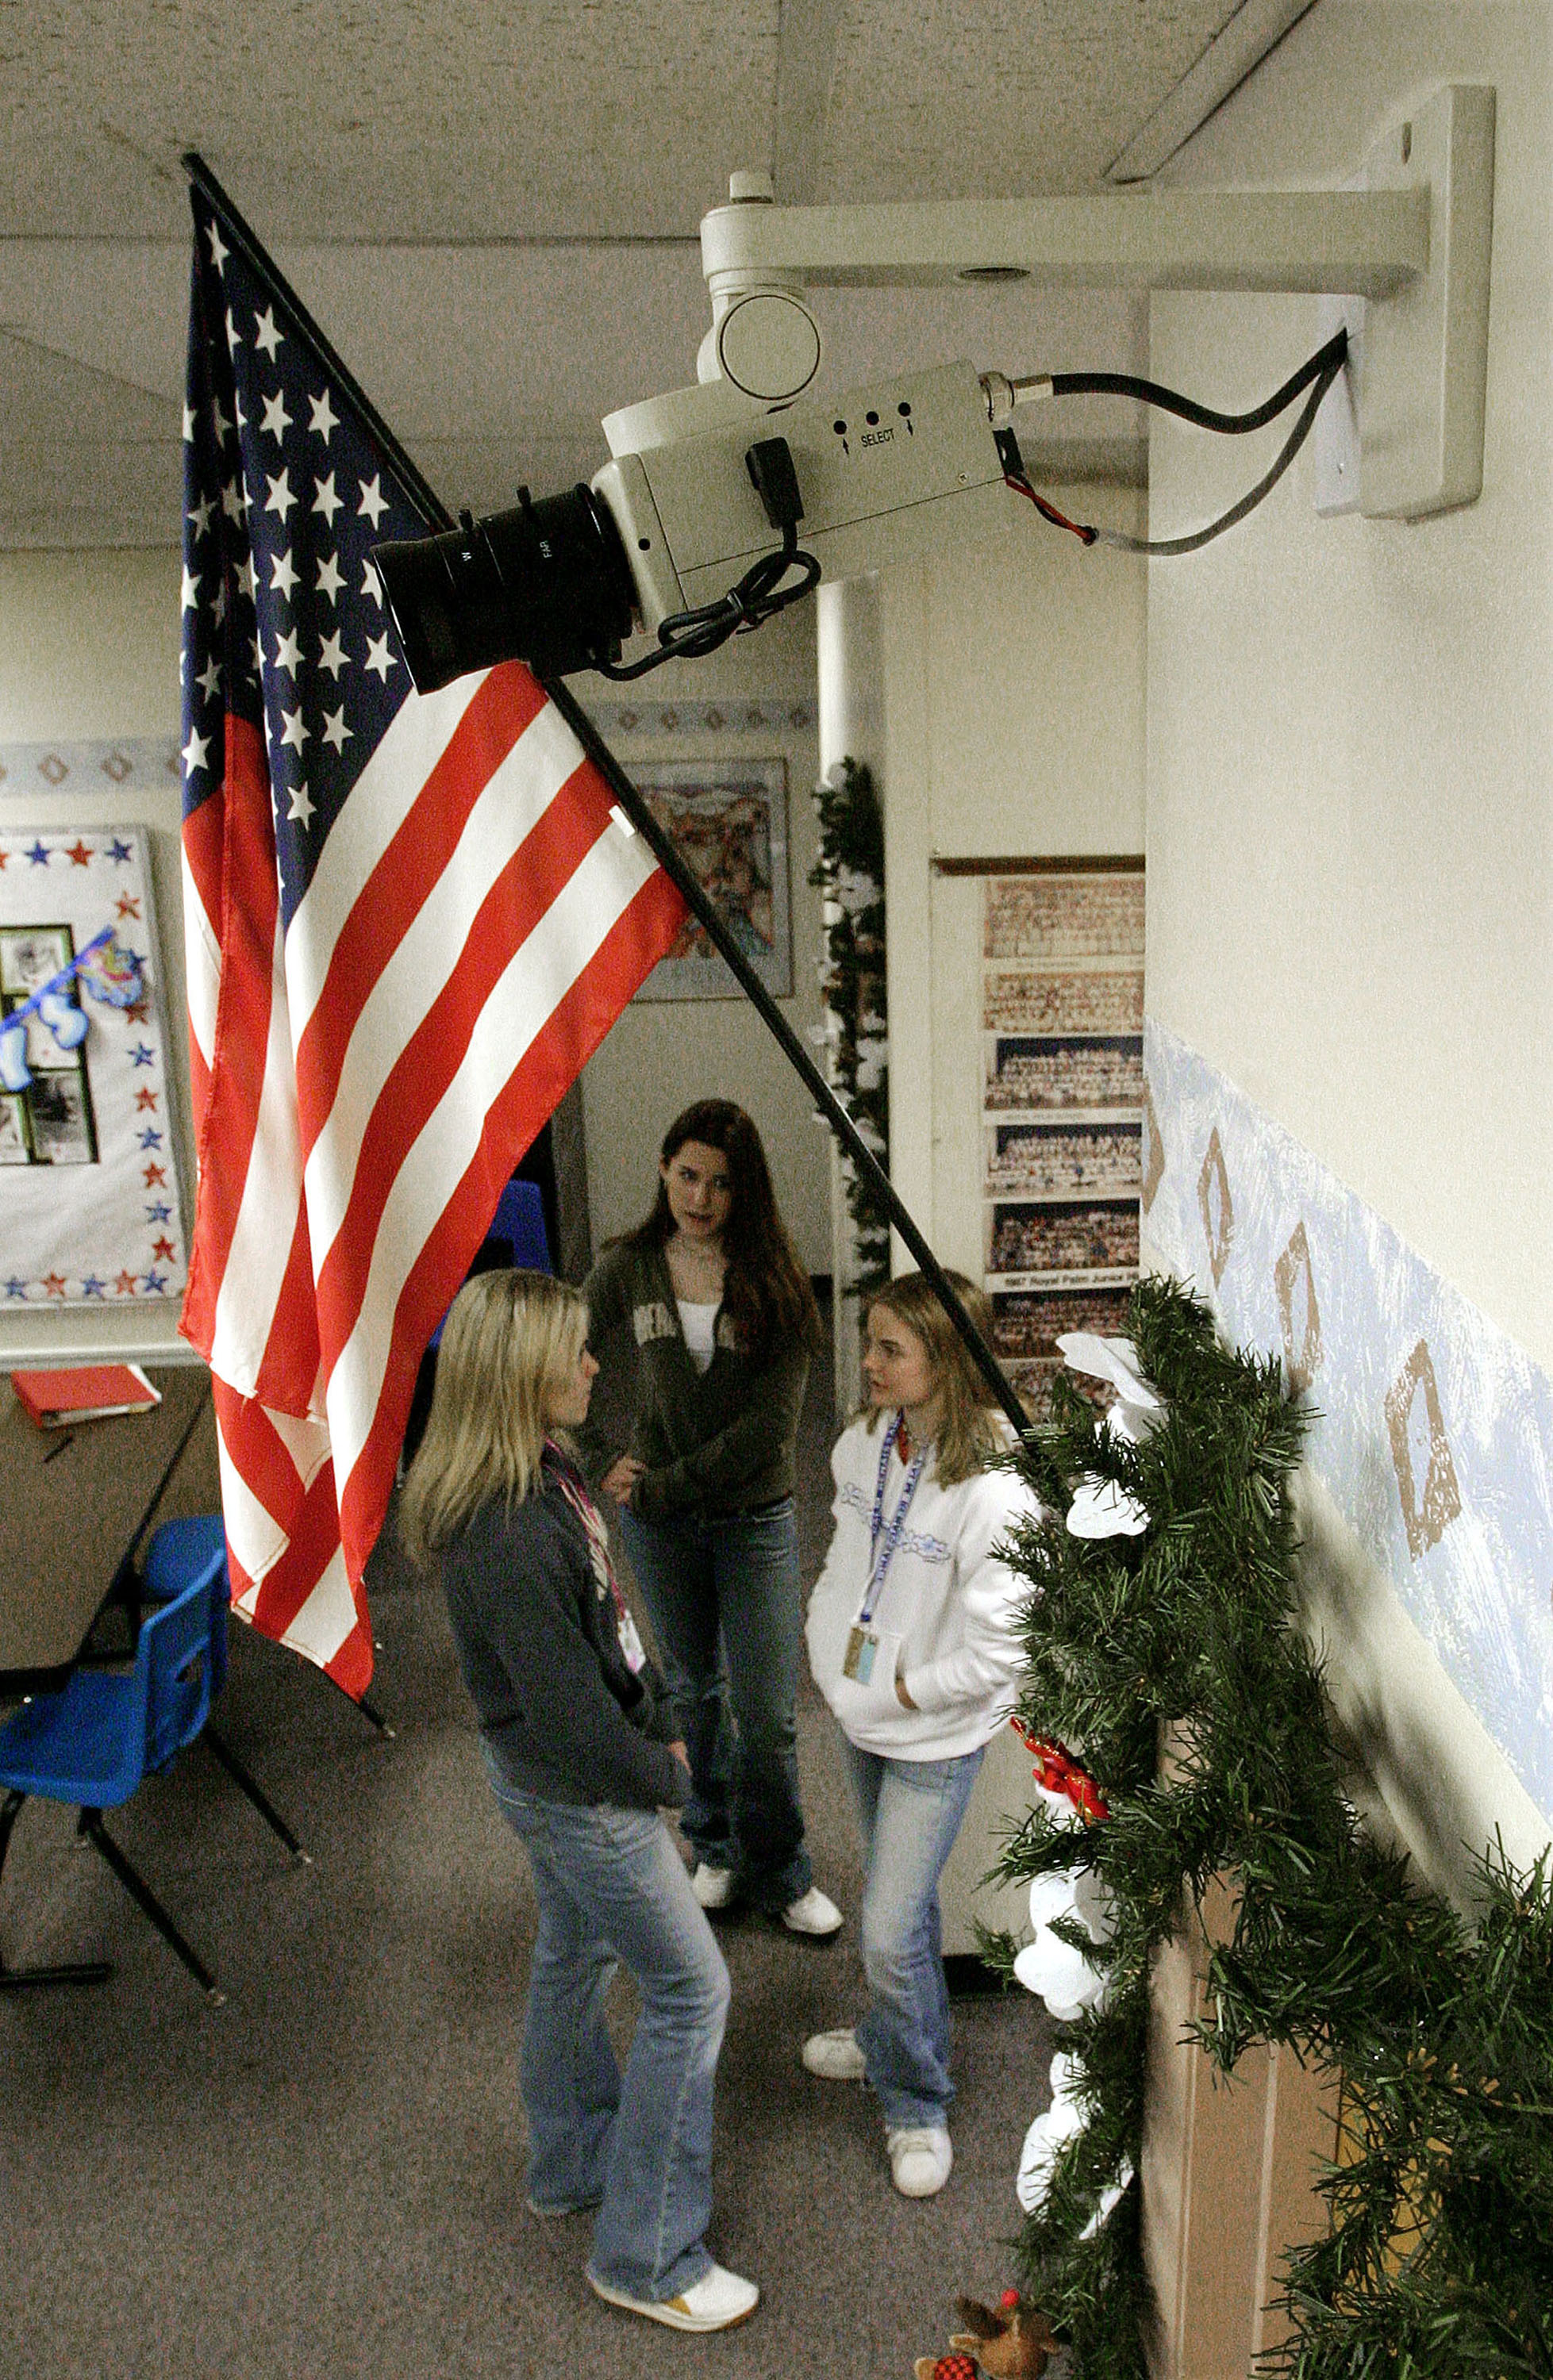 Students stand in a classroom beneath a US flag and near a facial-recogniton-enabled camera at a school in Phoenix, Arizona.